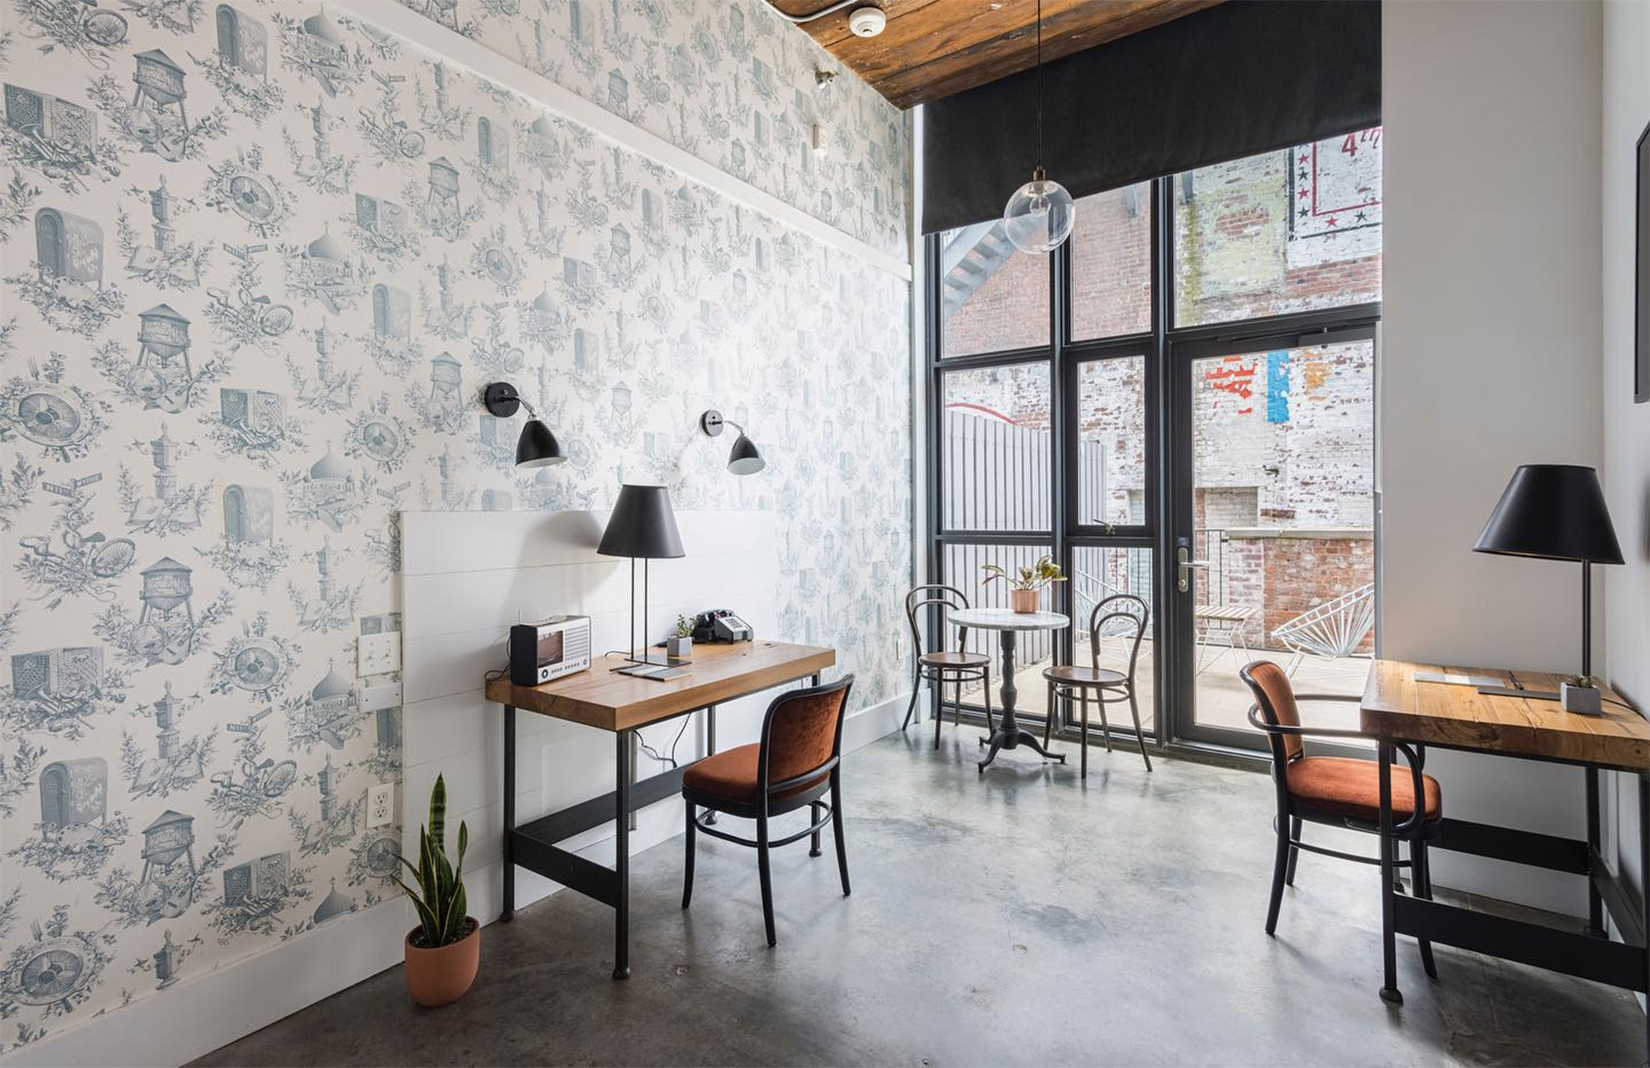 New Yorkers can now check into the office, as Brooklyn's Wythe Hotel converts one of its floors into private workspaces as it pivots to cope with pandemic life.